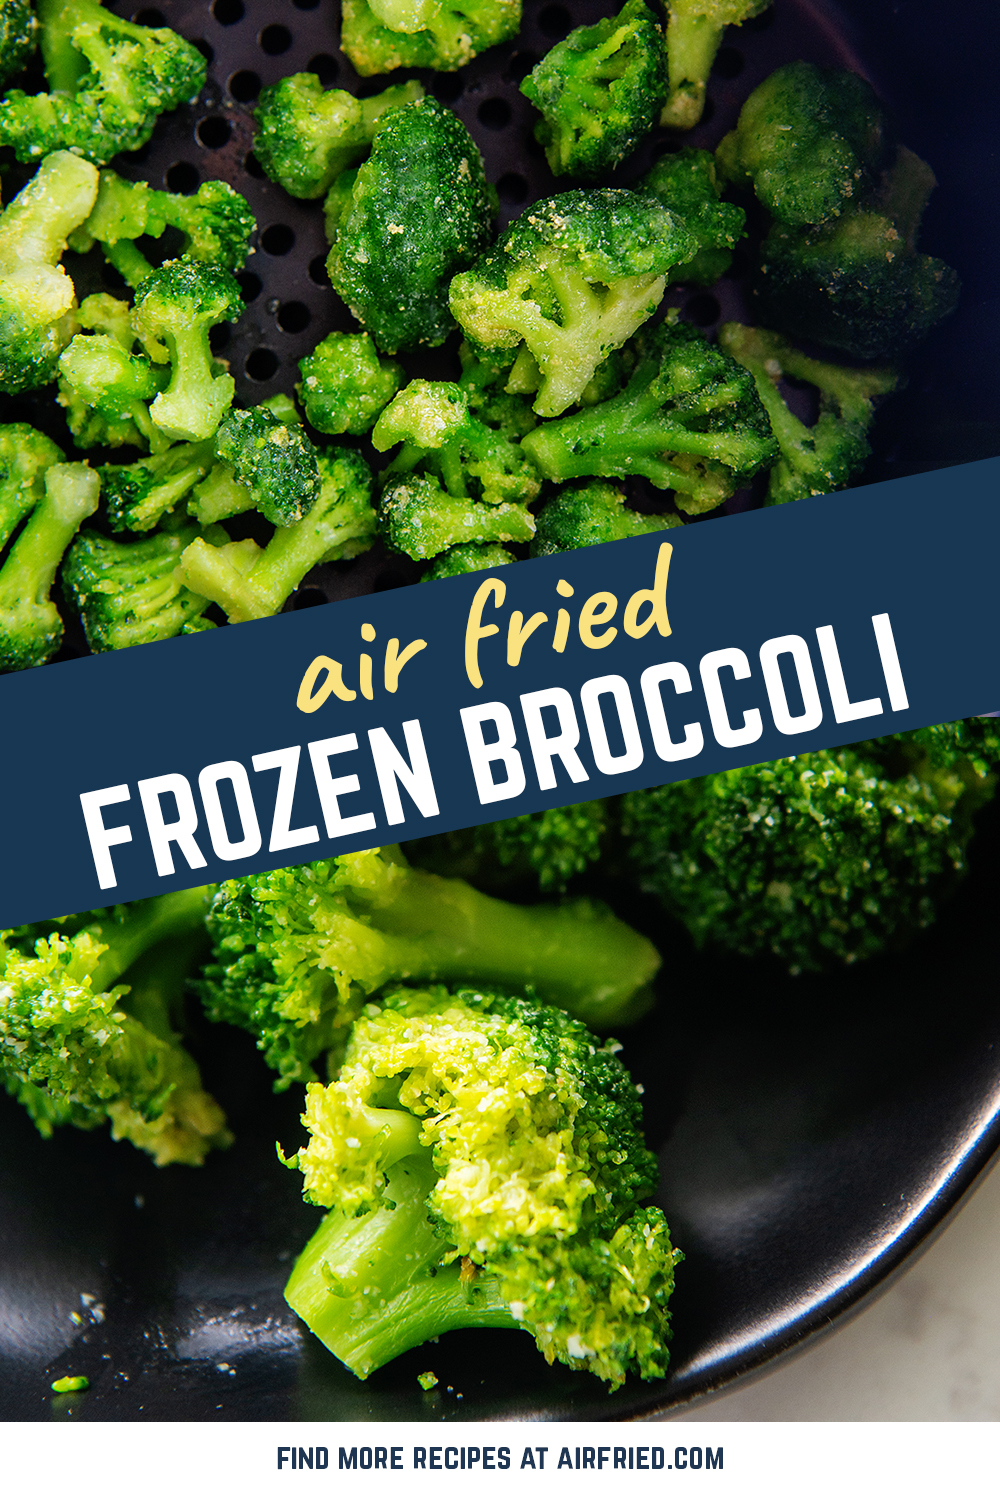 This recipe for cooking frozen broccoli works really well.  No need to thaw it!